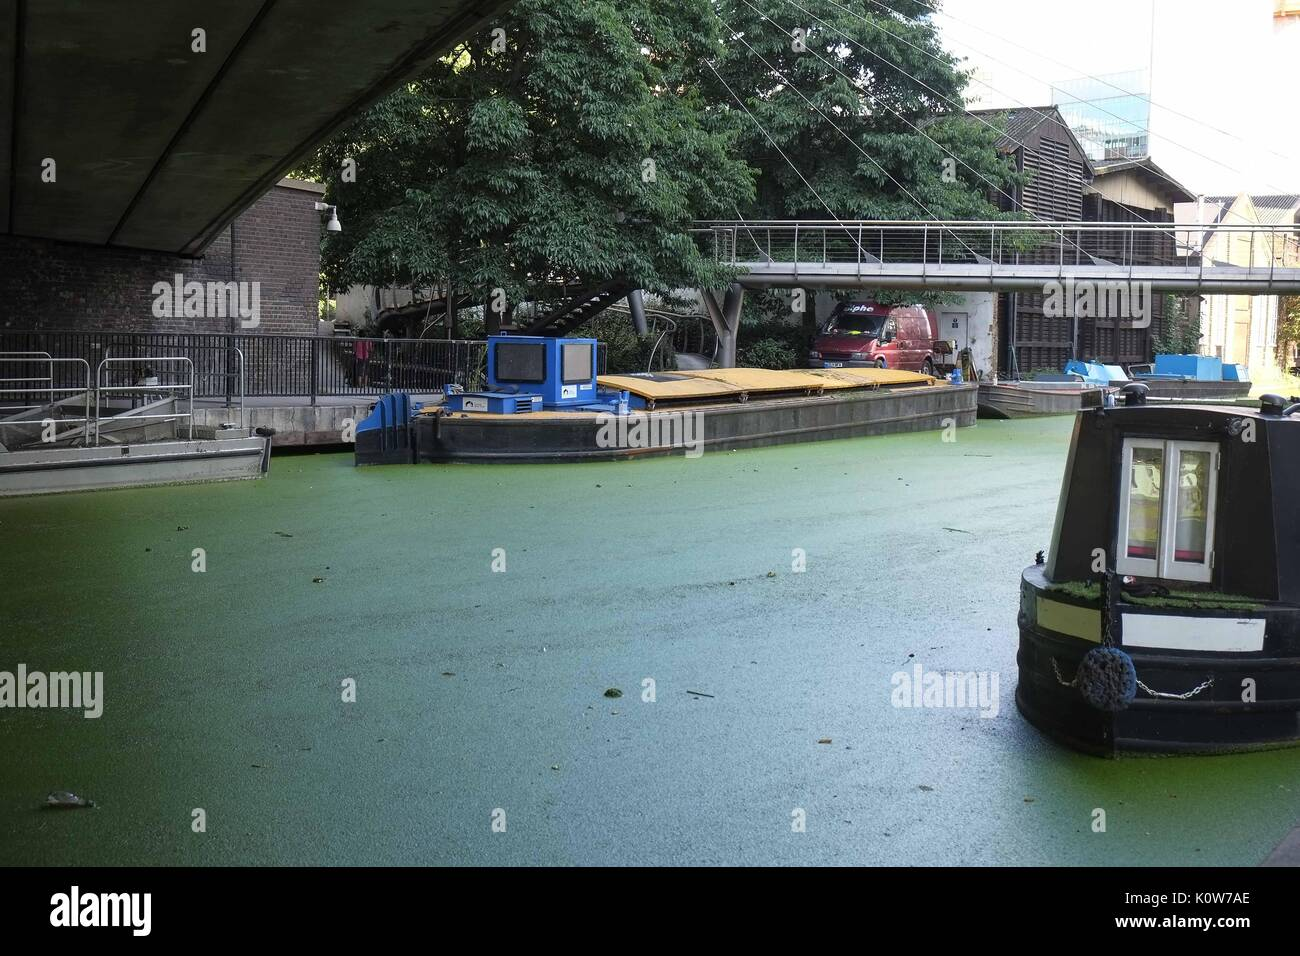 London, UK 25th August 2017. Little Venice Canal is covered in Algae after the recent warm weather.If the algae is toxic it uses up oxygen in the water at night which can suffocate fish and other creatures.Advise from the UK Enviroment Agency is to assume it is toxic and keep pets and children away from the water and avoid skin contact with the water or algae. Credit: claire doherty/Alamy Live News - Stock Image